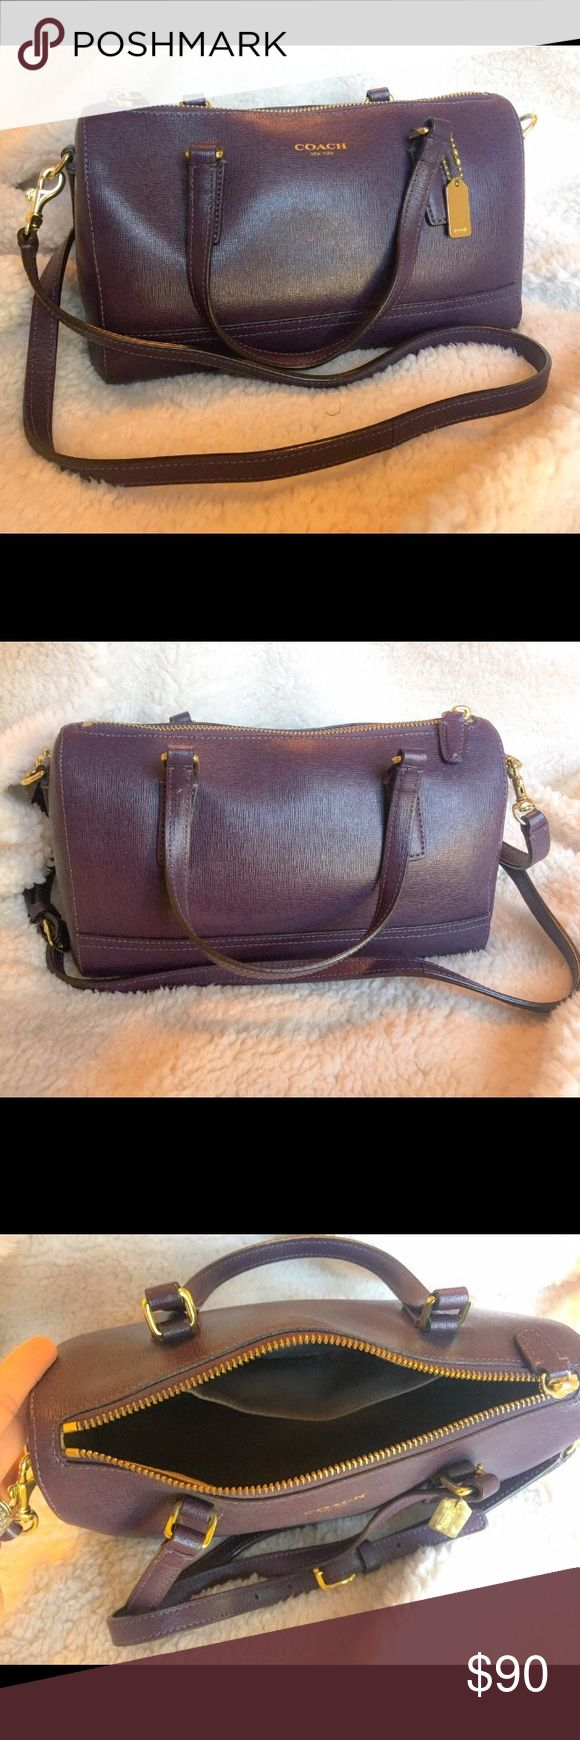 Coach Legacy Mini Satchel in Saffiano Leather Deep purple with gold hardware. Two small handle straps but comes with a long crossbody strap. Interior is grey with one pocket. Some discoloration on interior due to normal wear but exterior looks great! Coach Bags Crossbody Bags